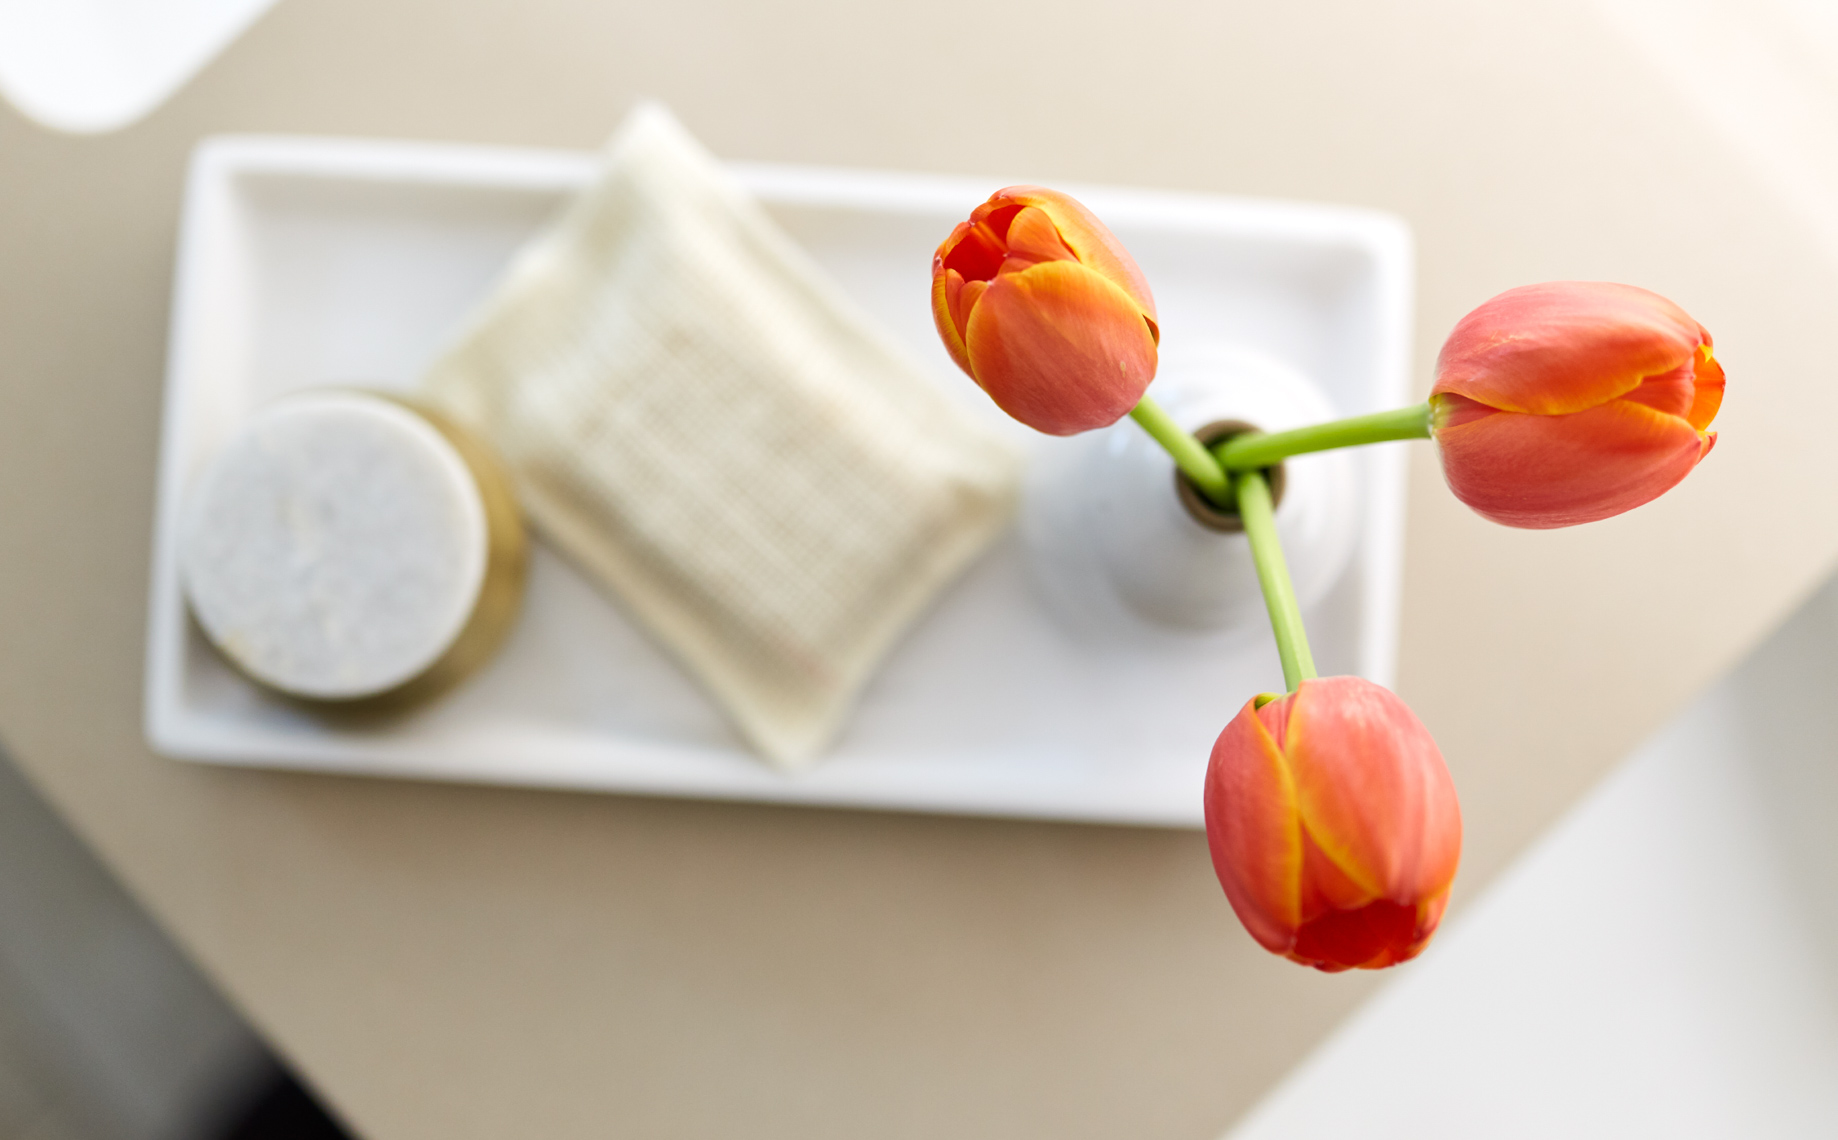 Orange tulips in Hotel bathroom on white tray shot for Senza Hotel and Spa in Napa California